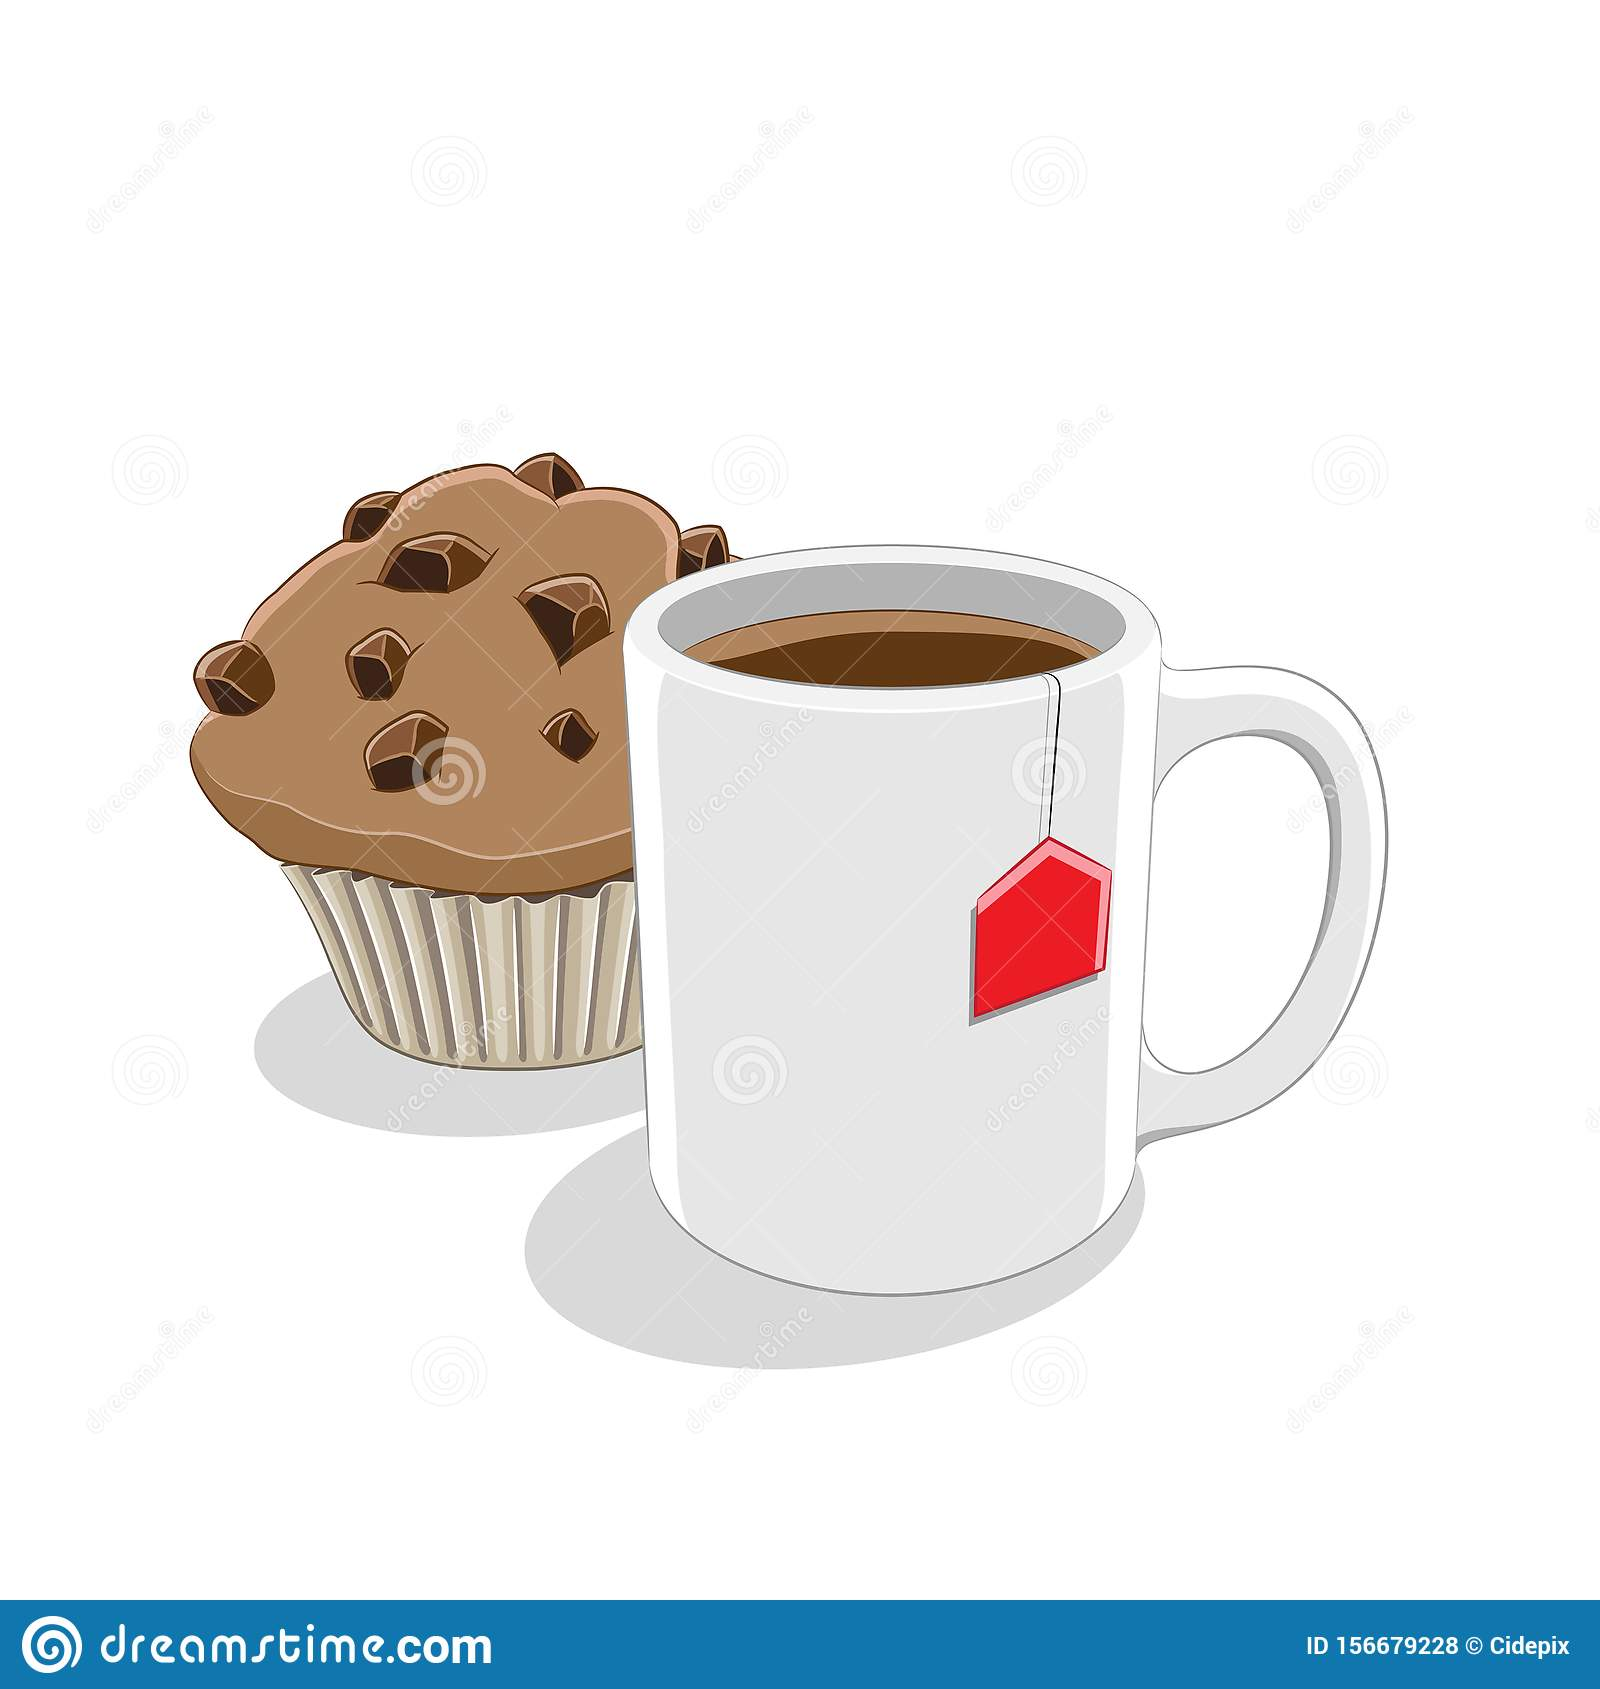 Coffee Mug And Muffin Breakfast Vector Illustration Stock Vector Illustration Of Coffee Design 156679228